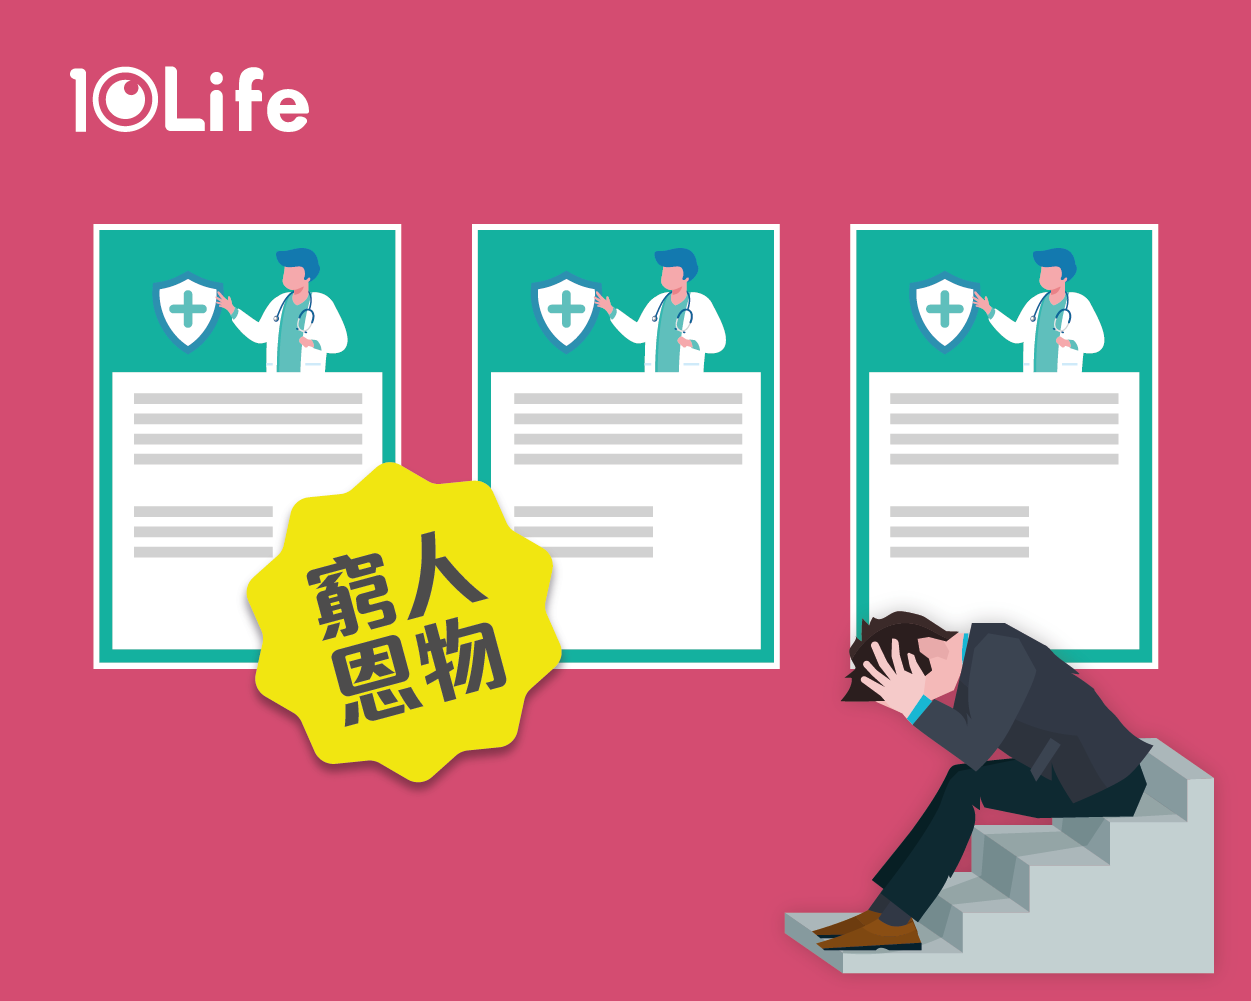 Low cost VHIS - medical coverage options at below HK$5000 a year | 10Life